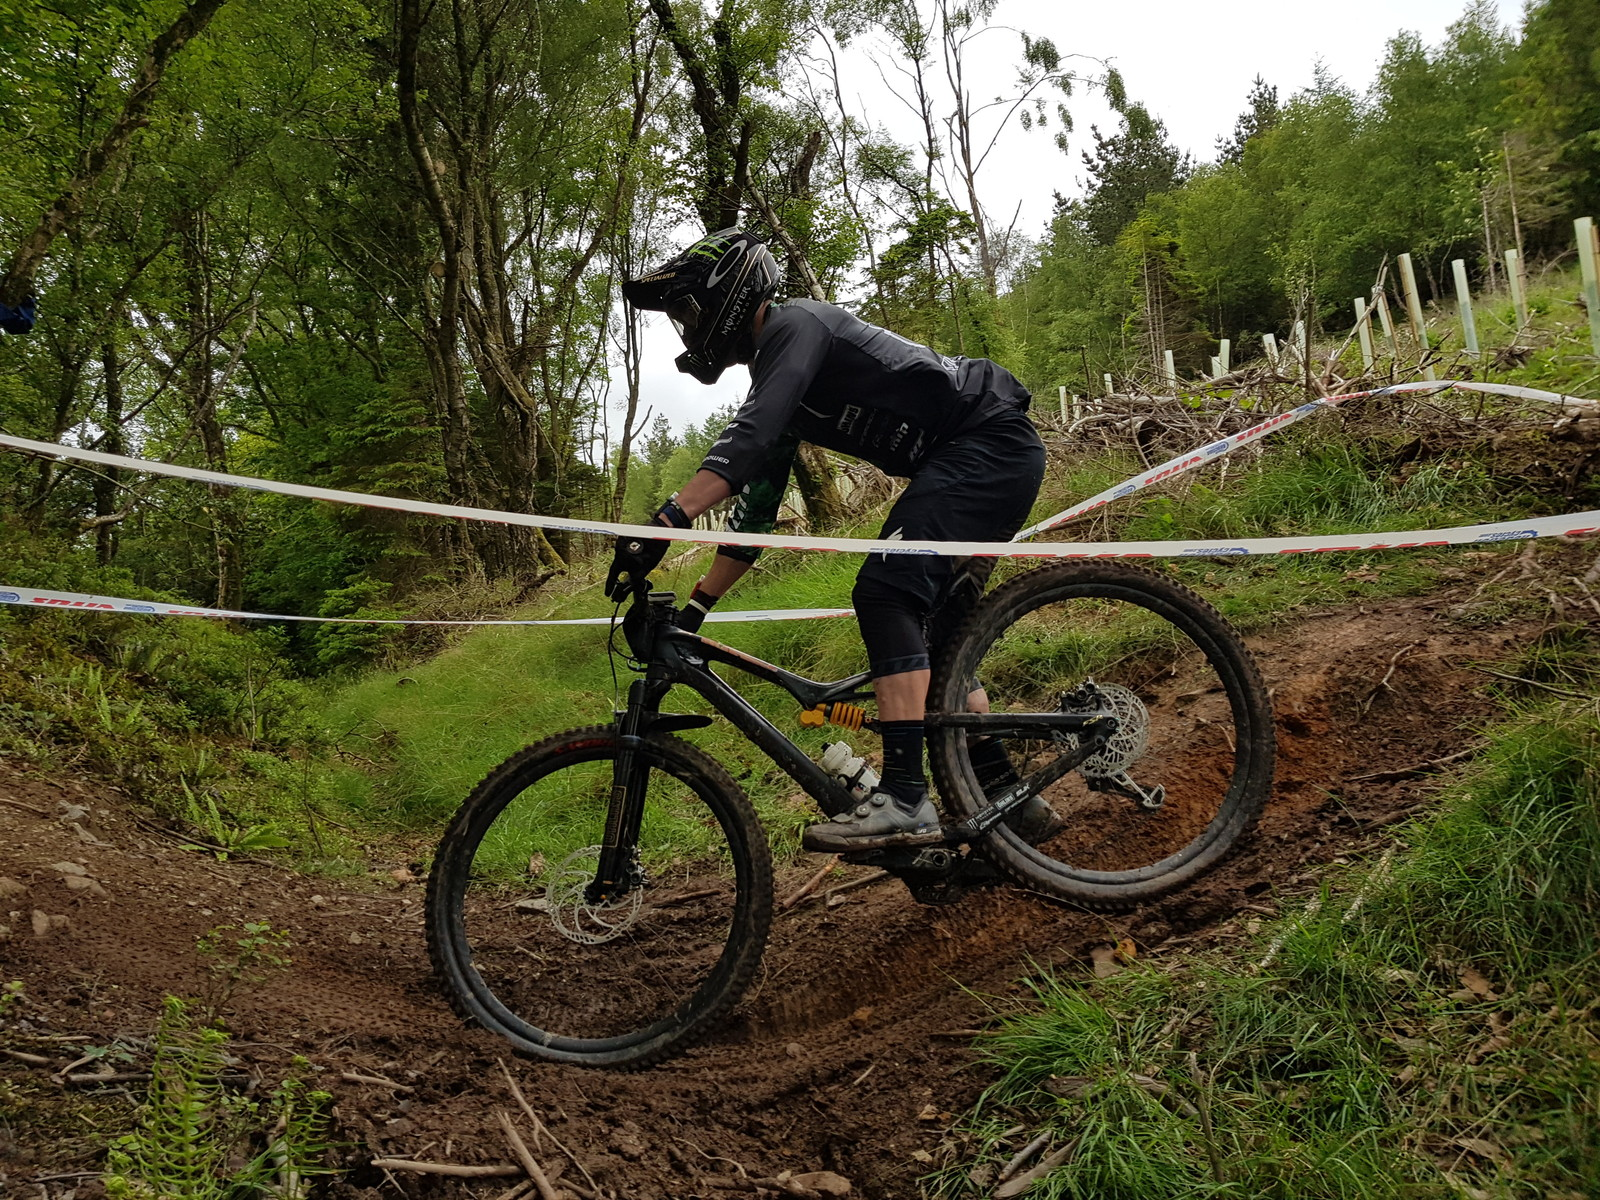 Jared Graves' Specialized Stumpjumper G-ed out - G-out Project: EWS Ireland 2017 - Mountain Biking Pictures - Vital MTB